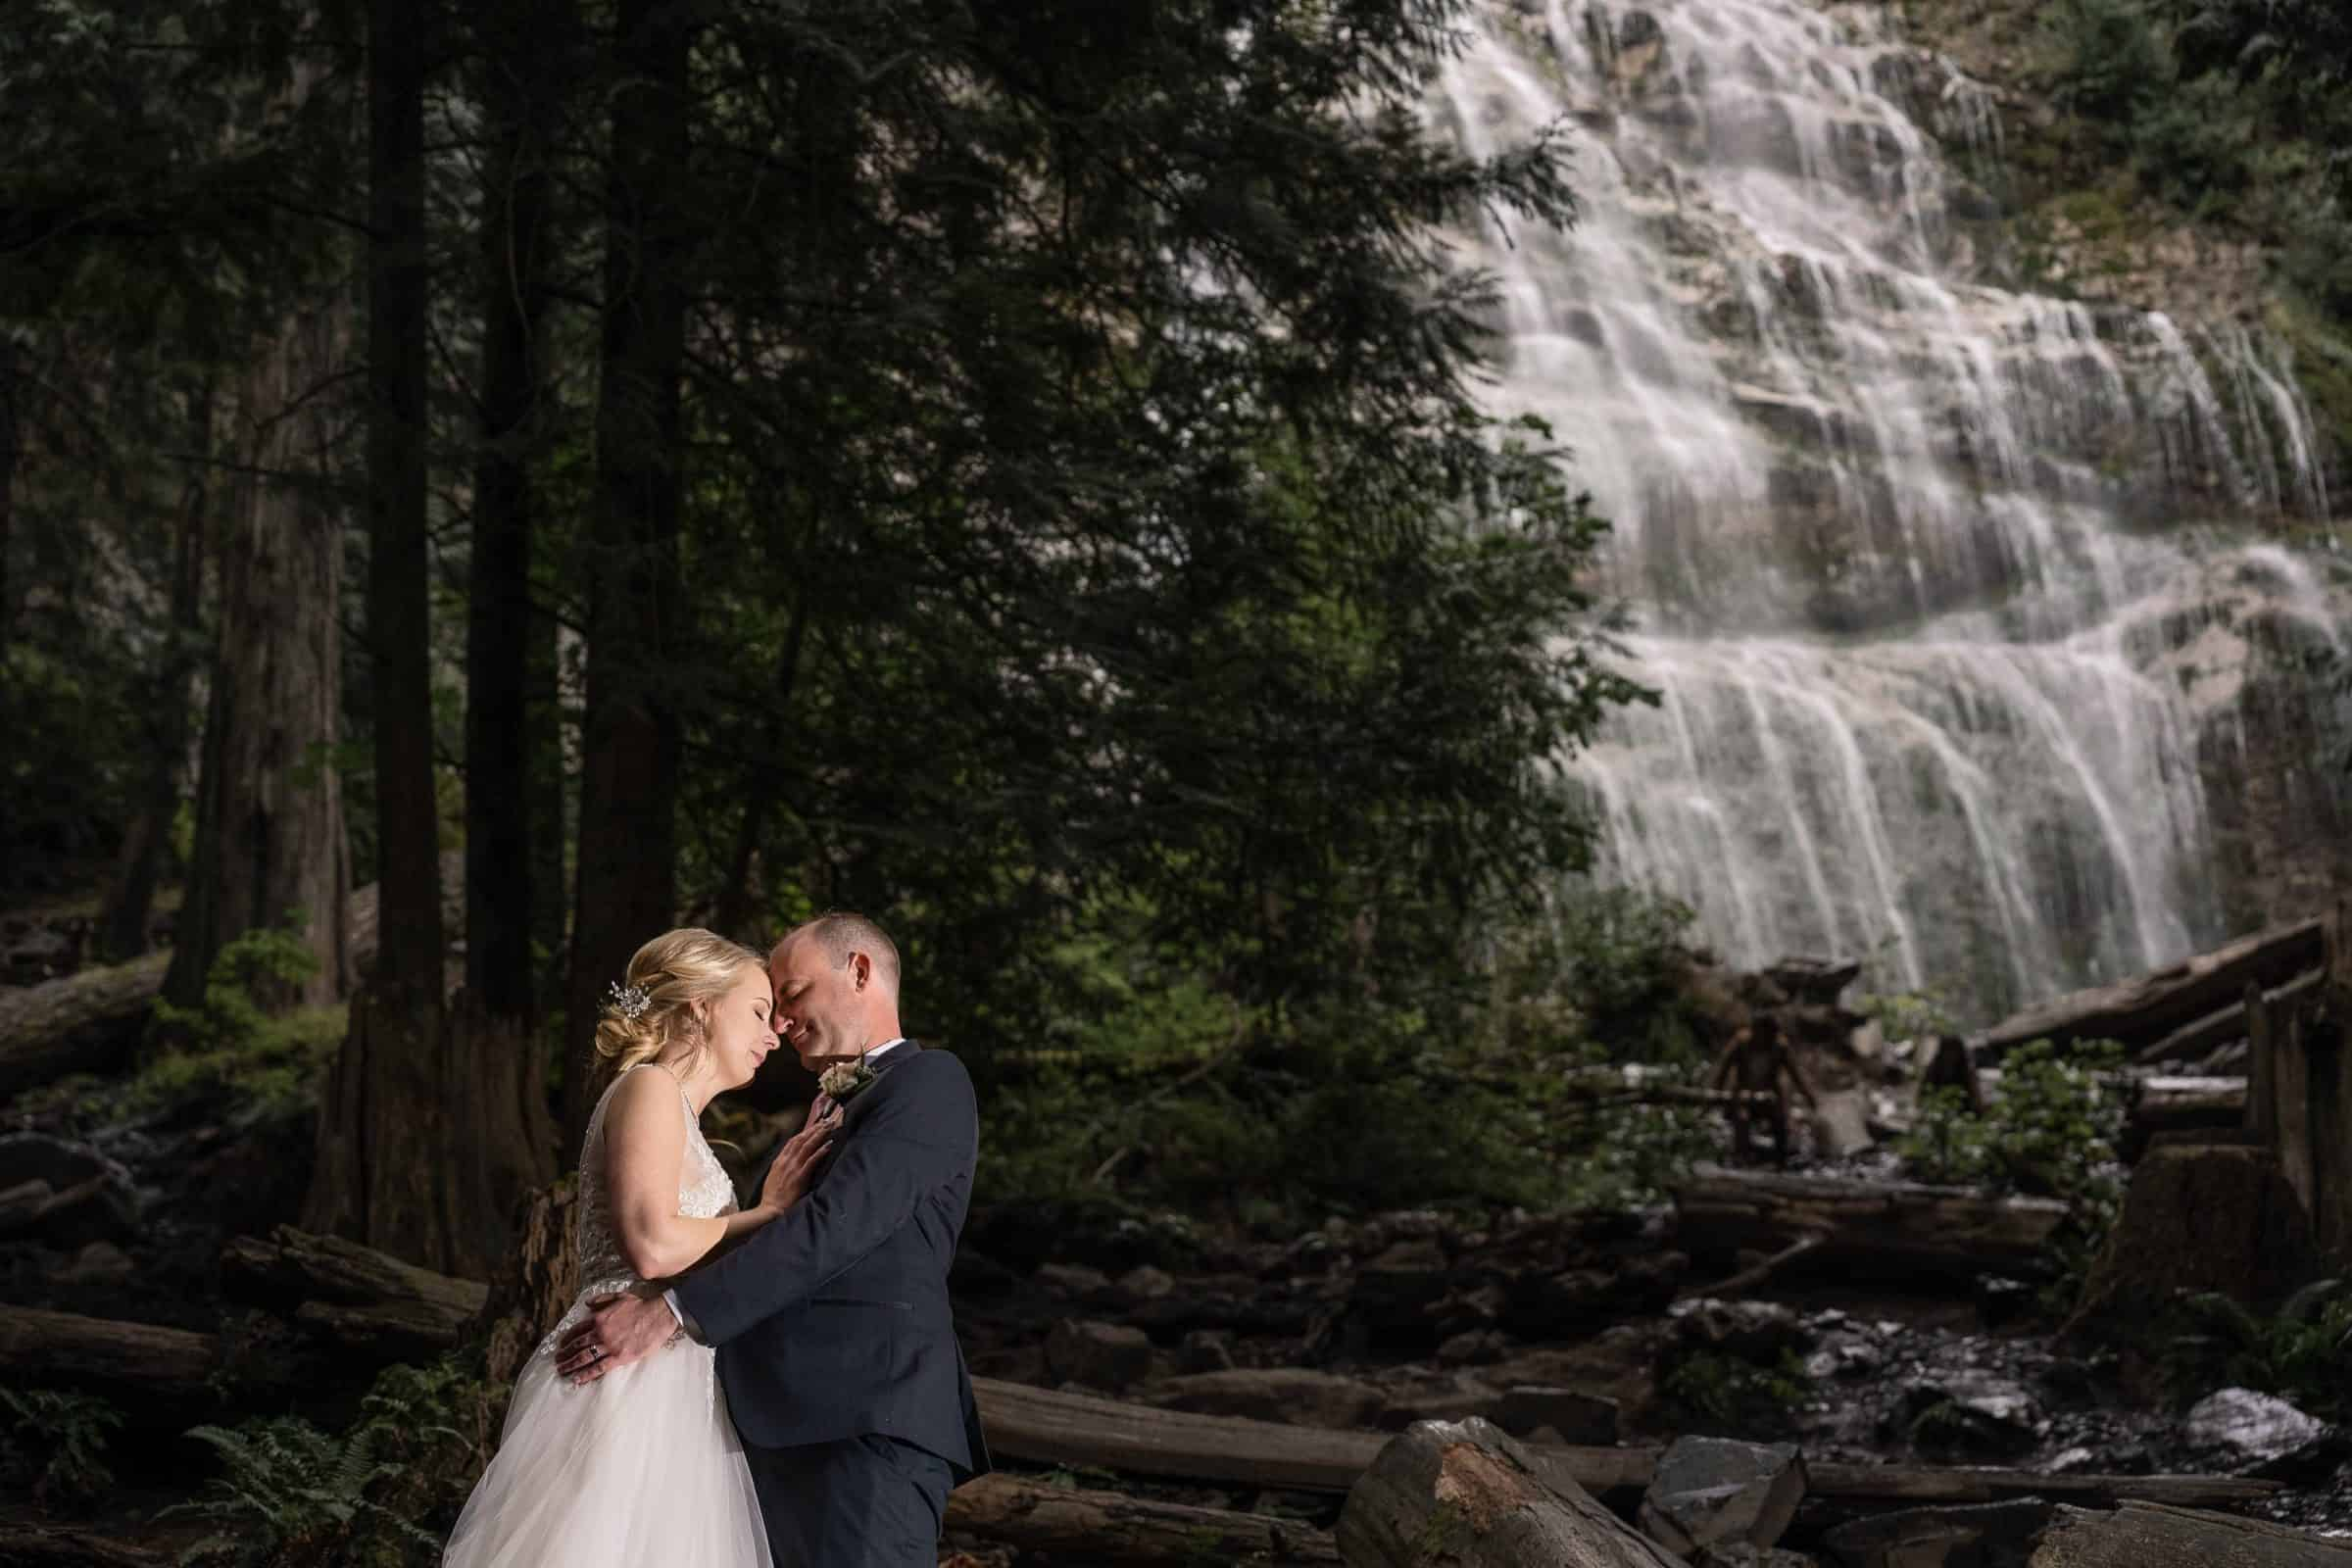 close up of bride and groom holding each other with bridal falls in background